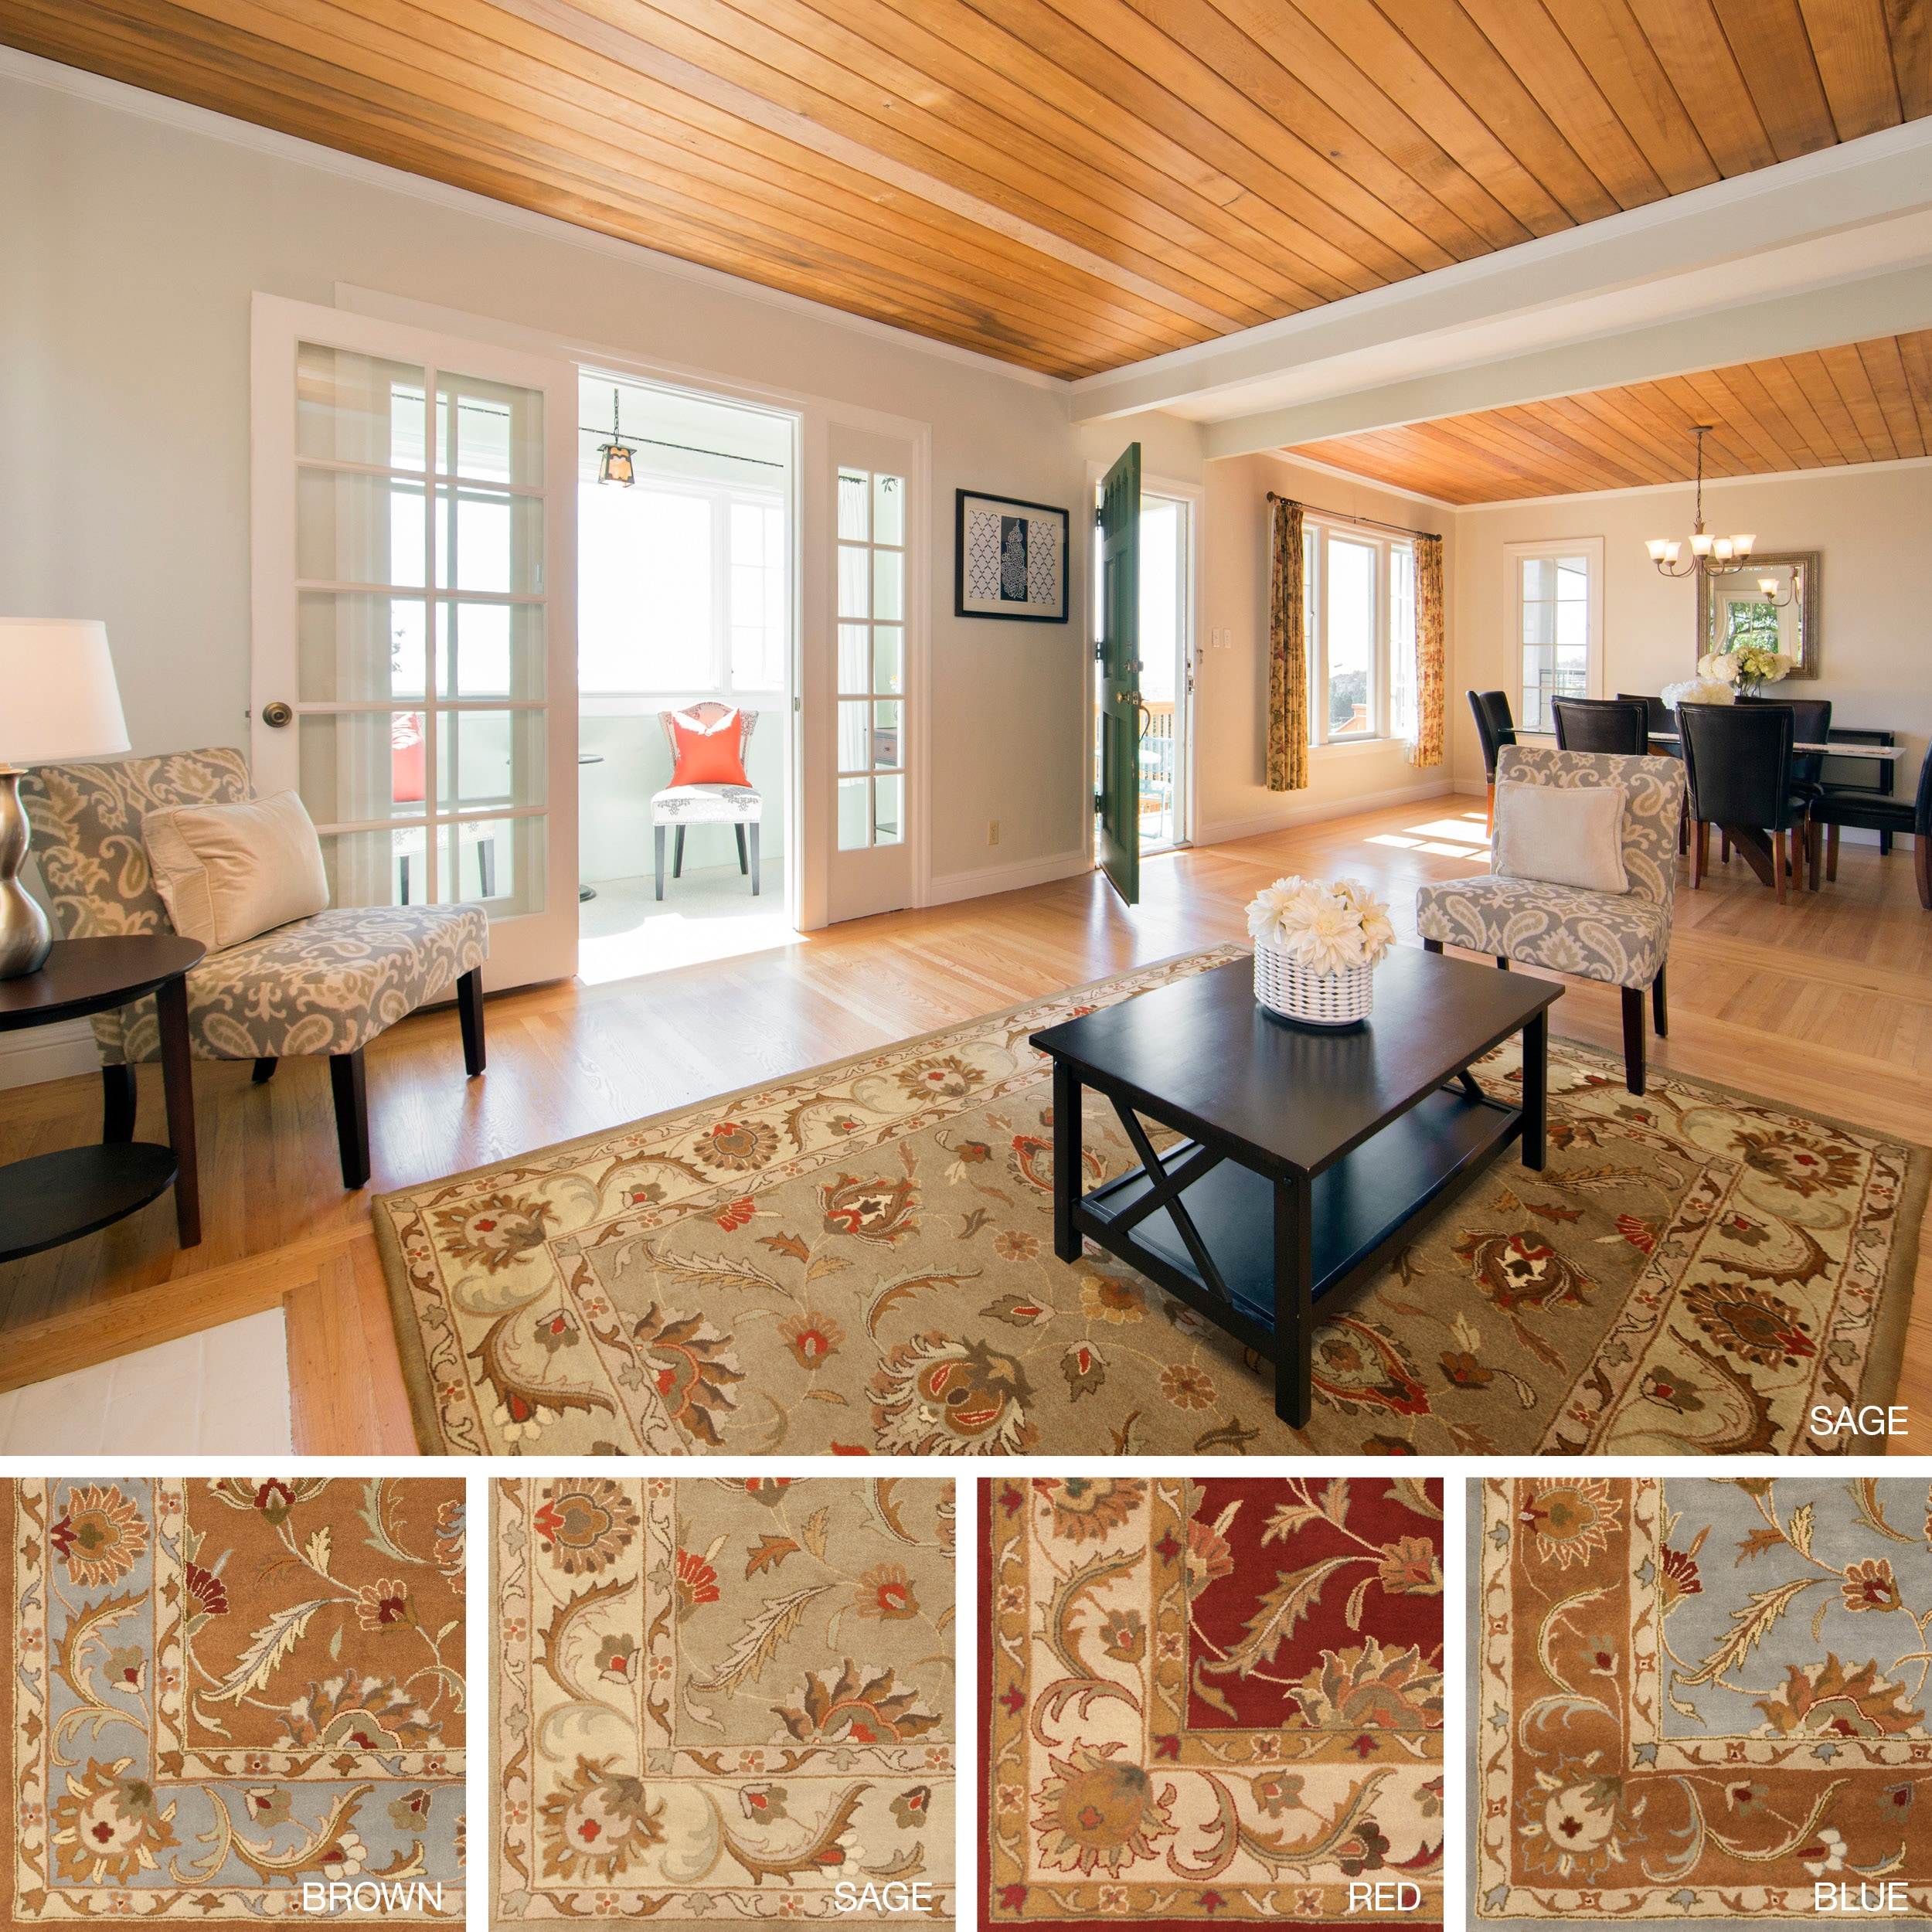 Artistic Weavers Hand-tufted Michelle Bordered Traditional Wool Area Rug (8' x 11') at Sears.com